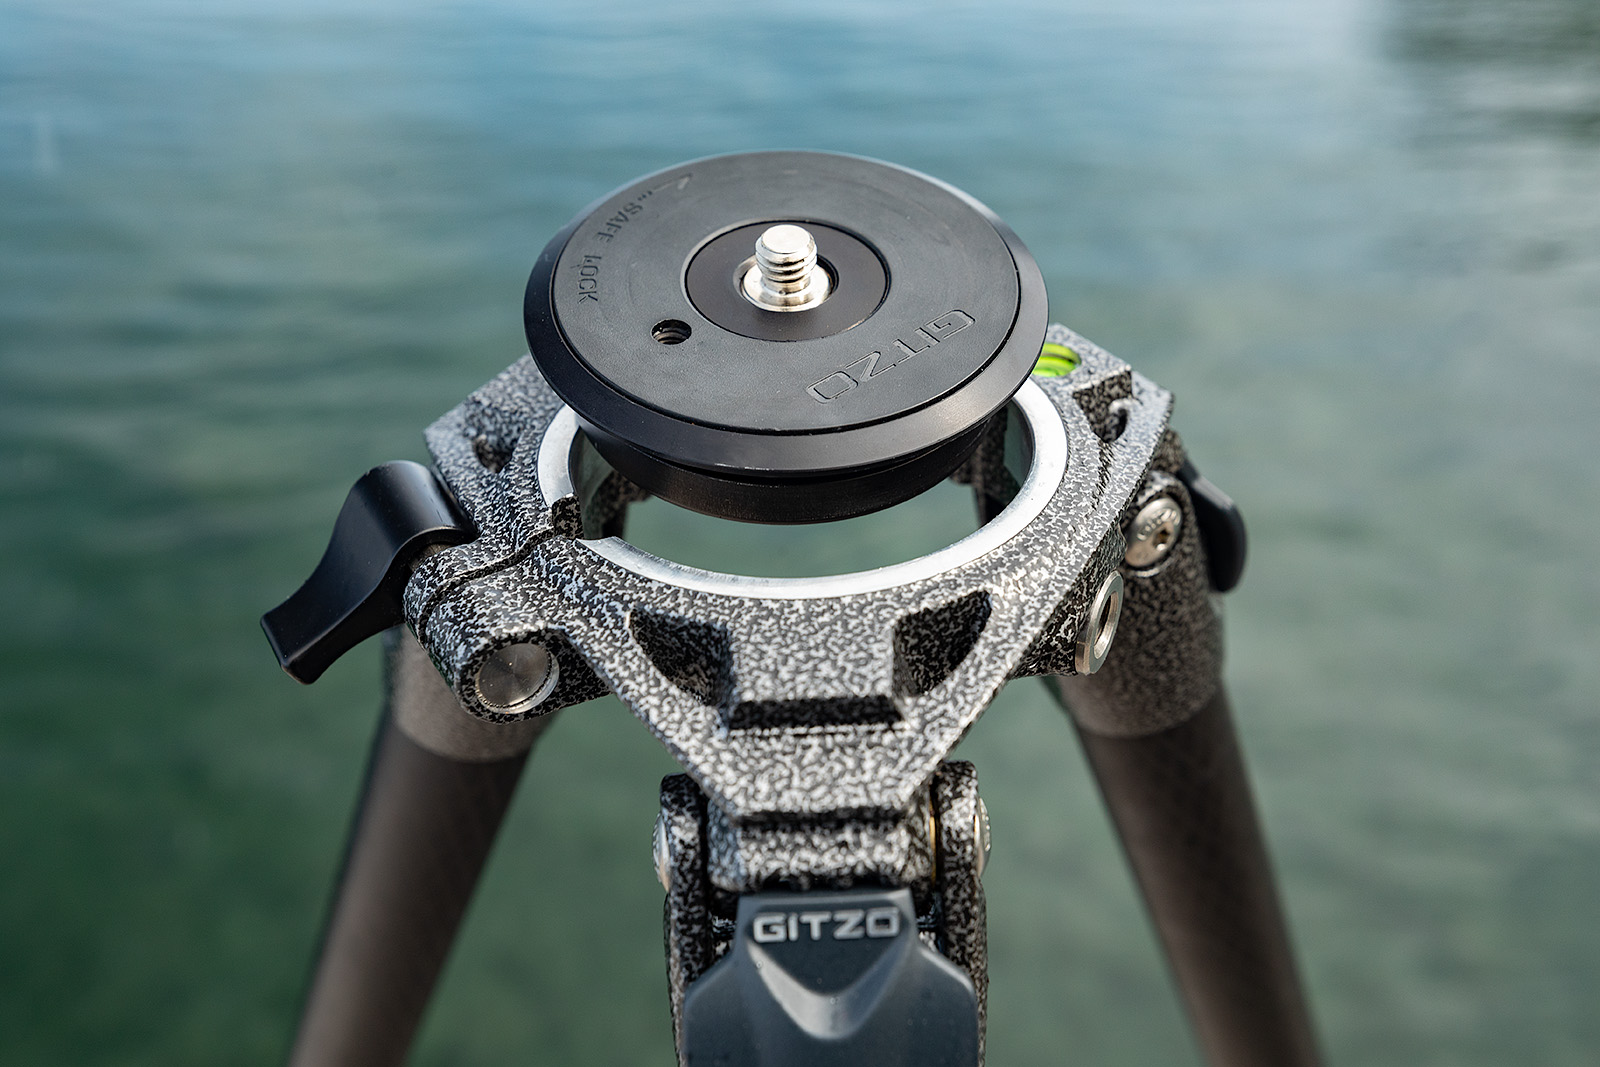 Gitzo Systematic Tripod interchangeable plate